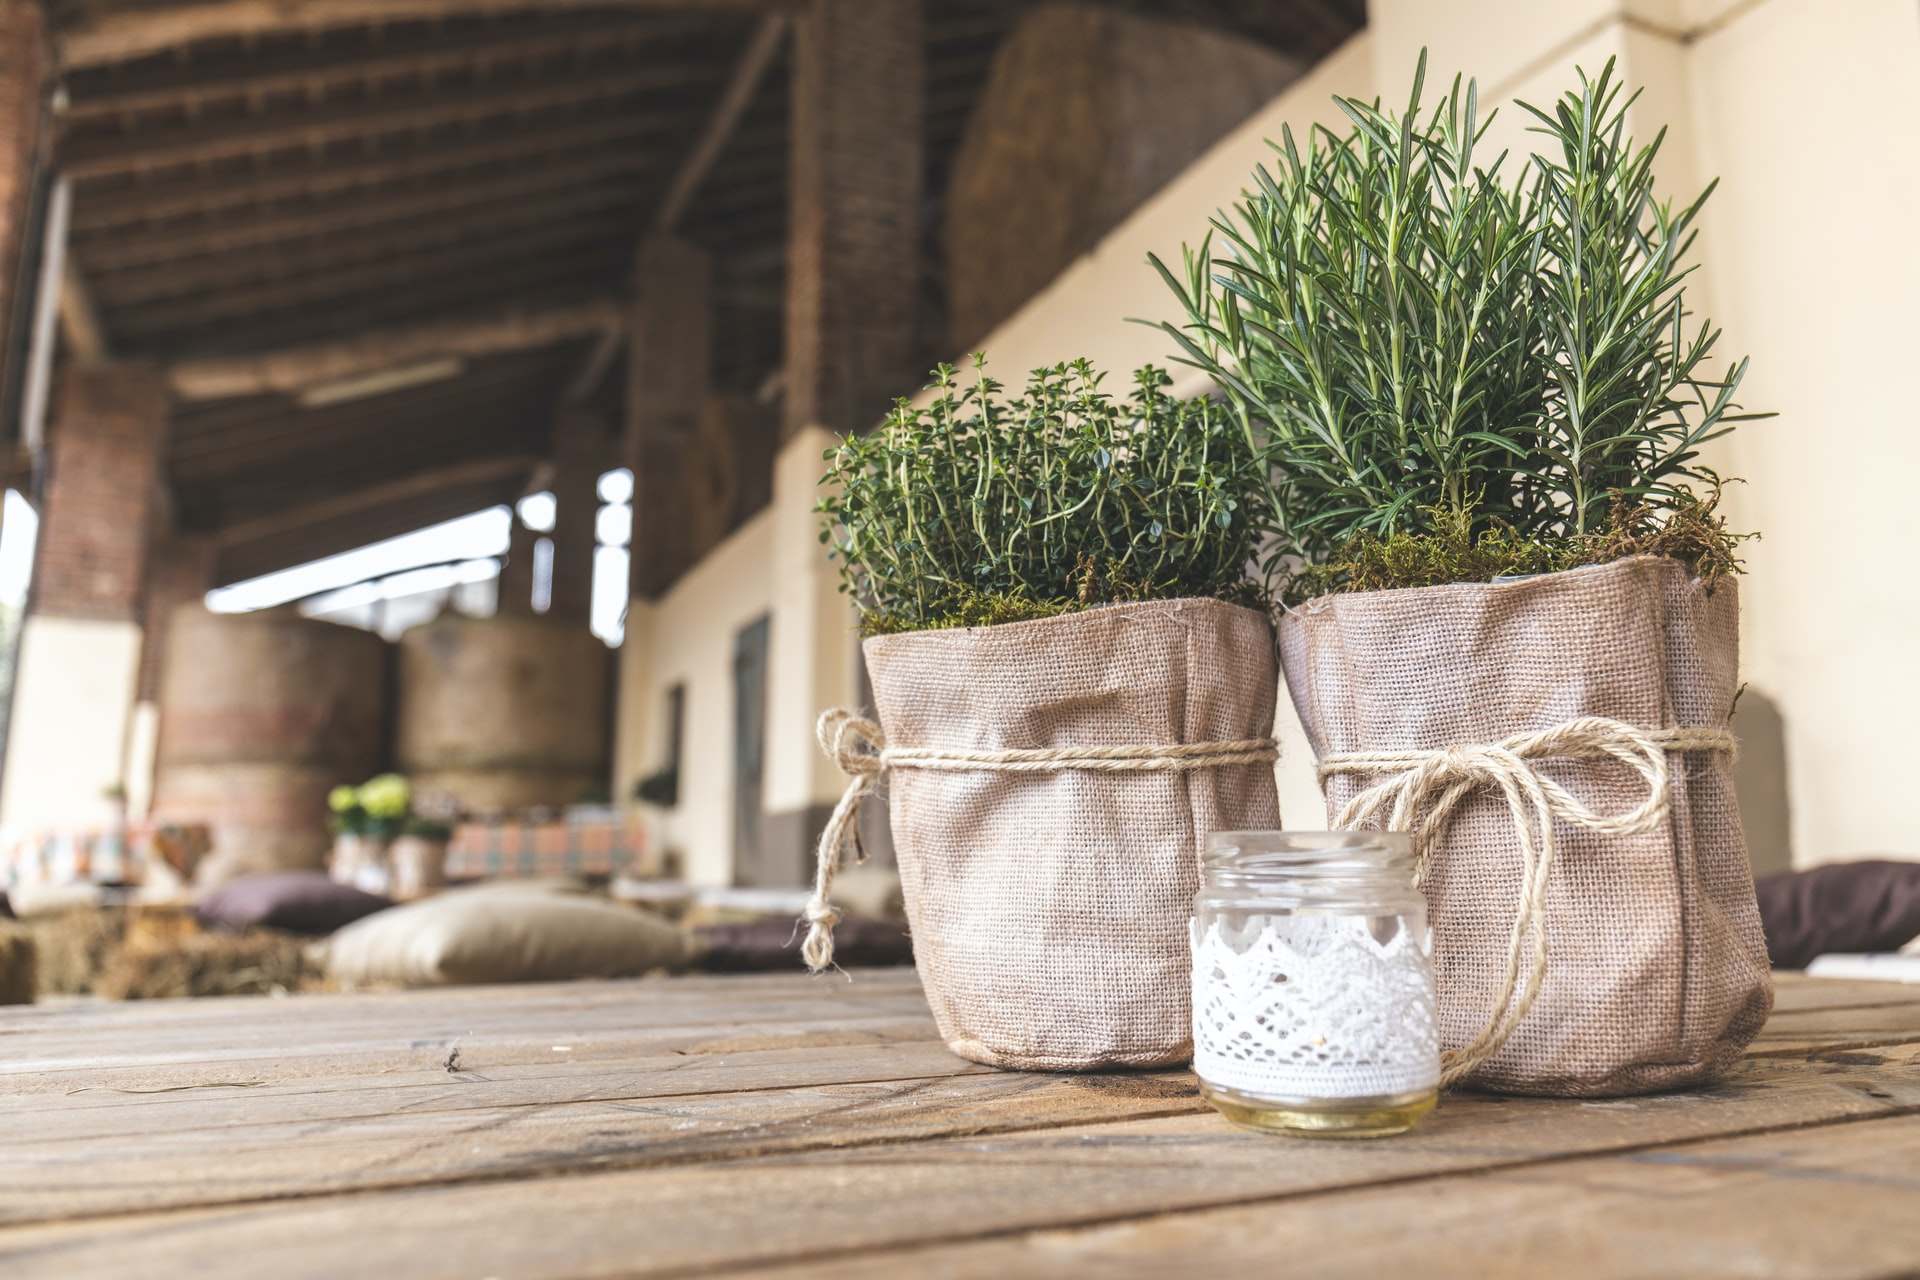 Rosemary medicinal herb and essential oil